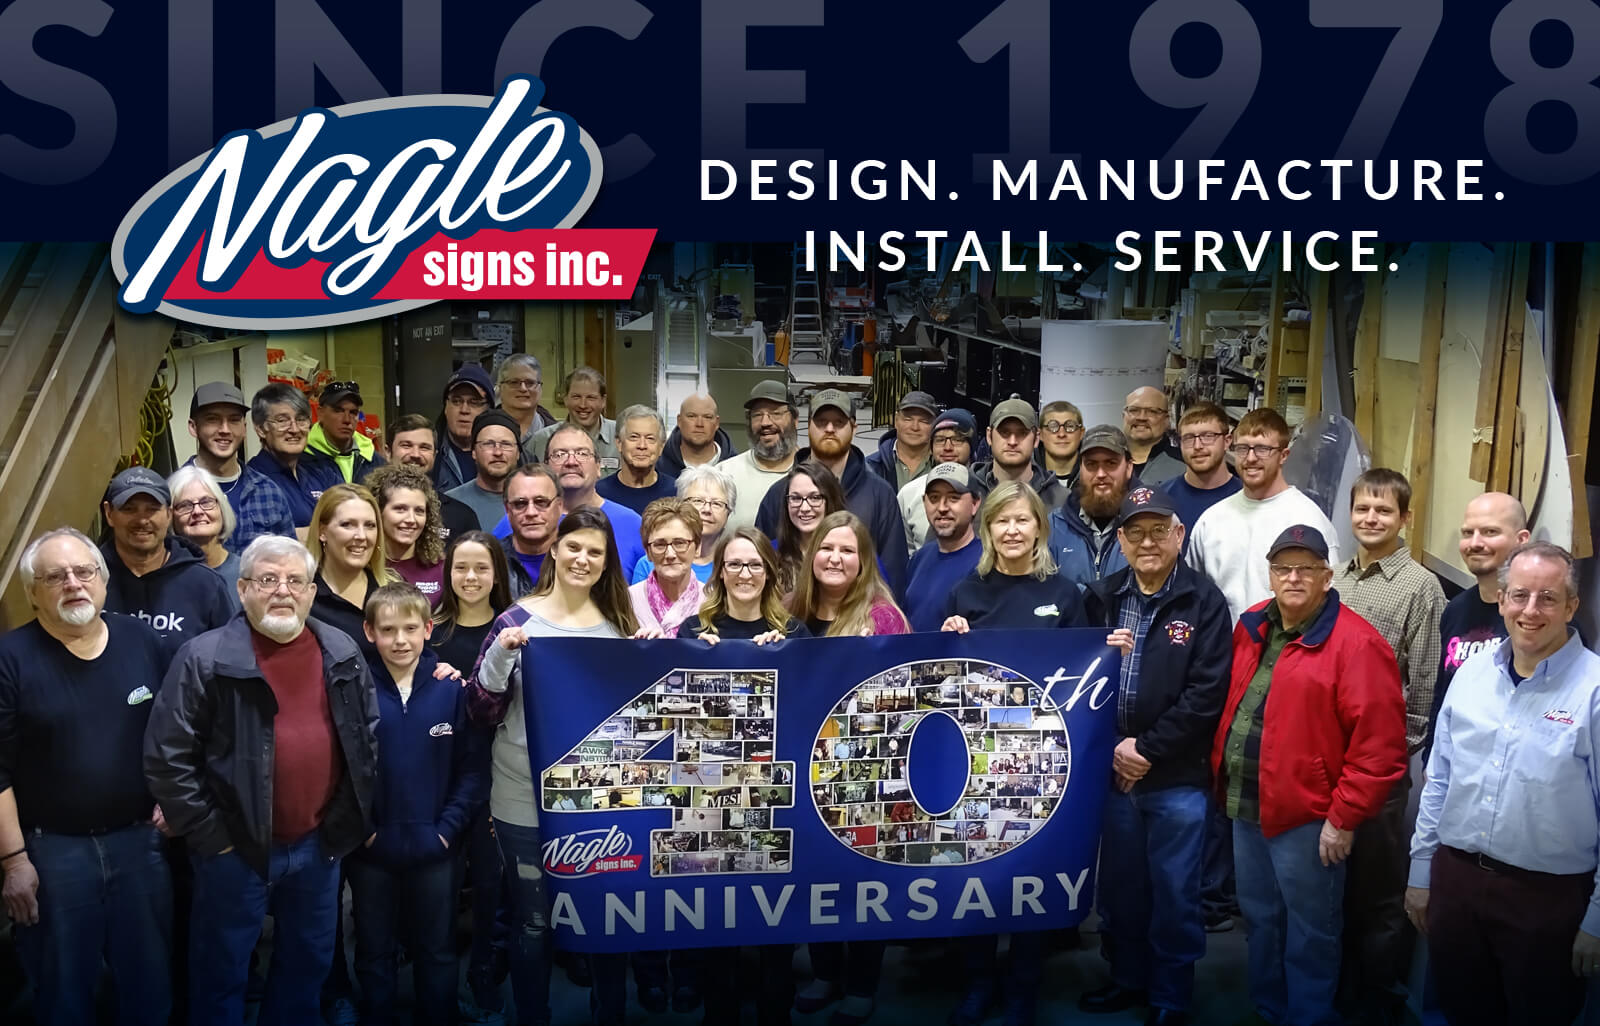 Nagle Signs Inc. company photo